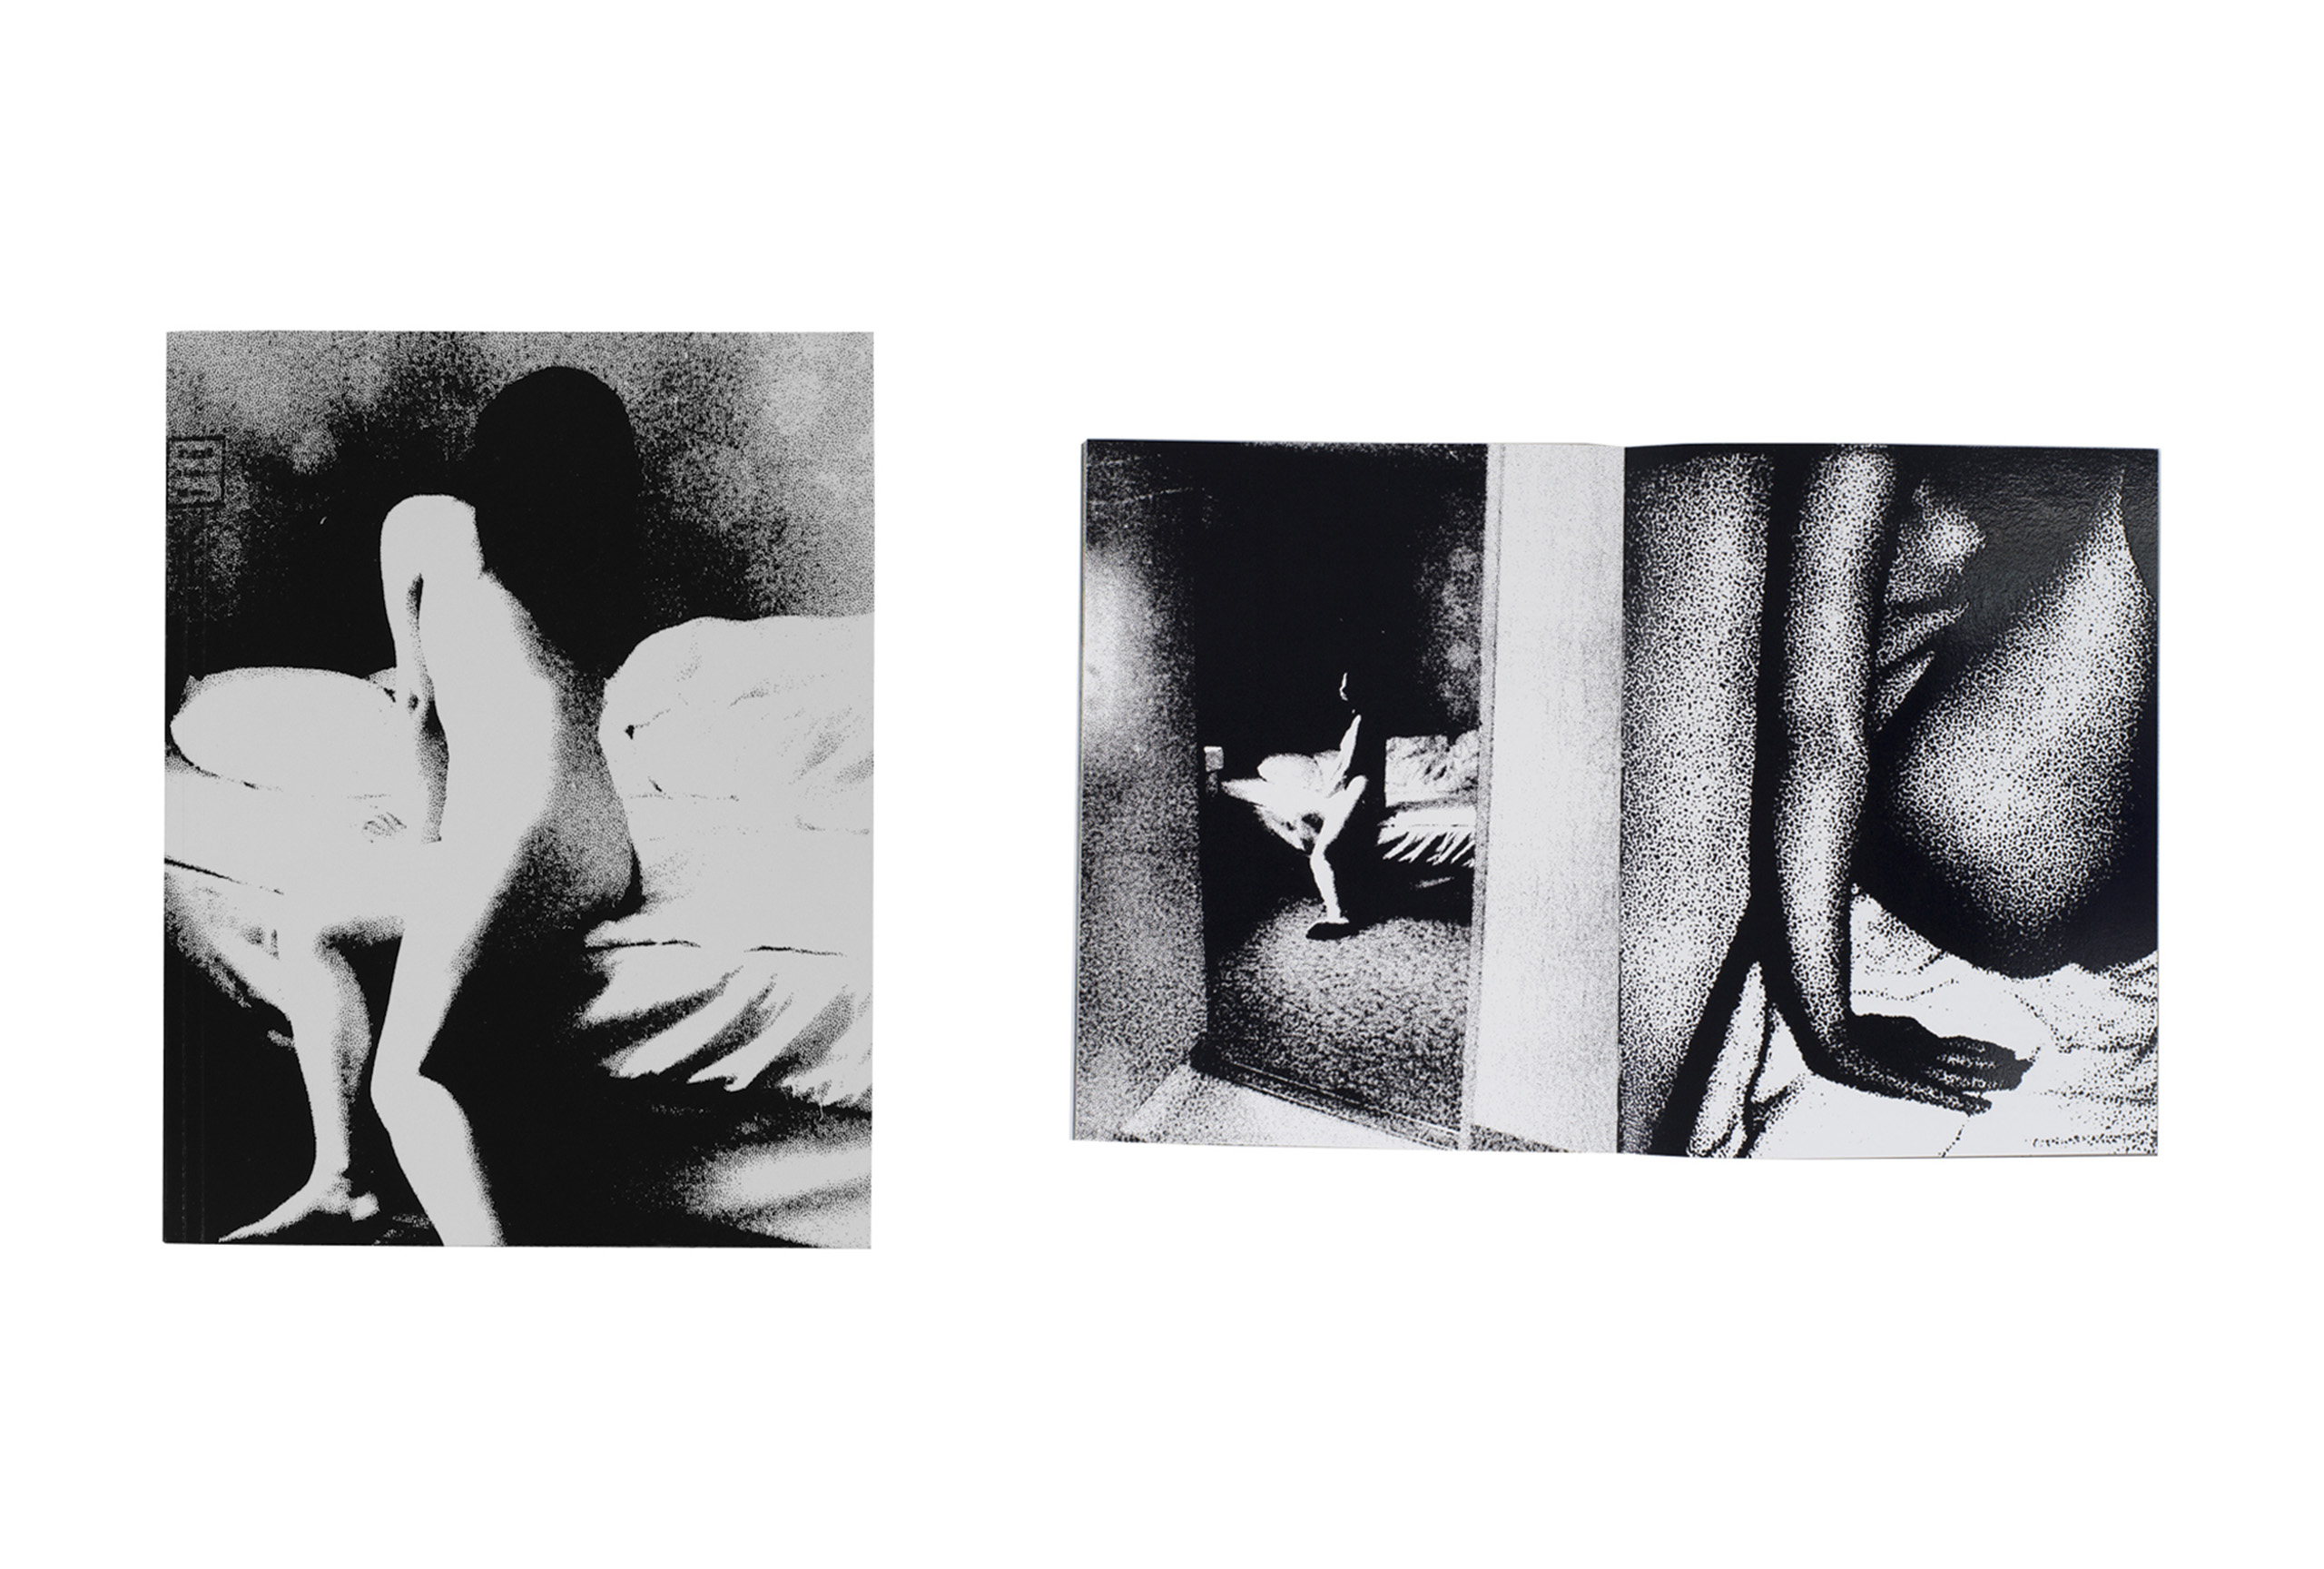 Taratine by Daisuke Yokota, published by Session Press. Short-listed for PhotoBook of the Year.